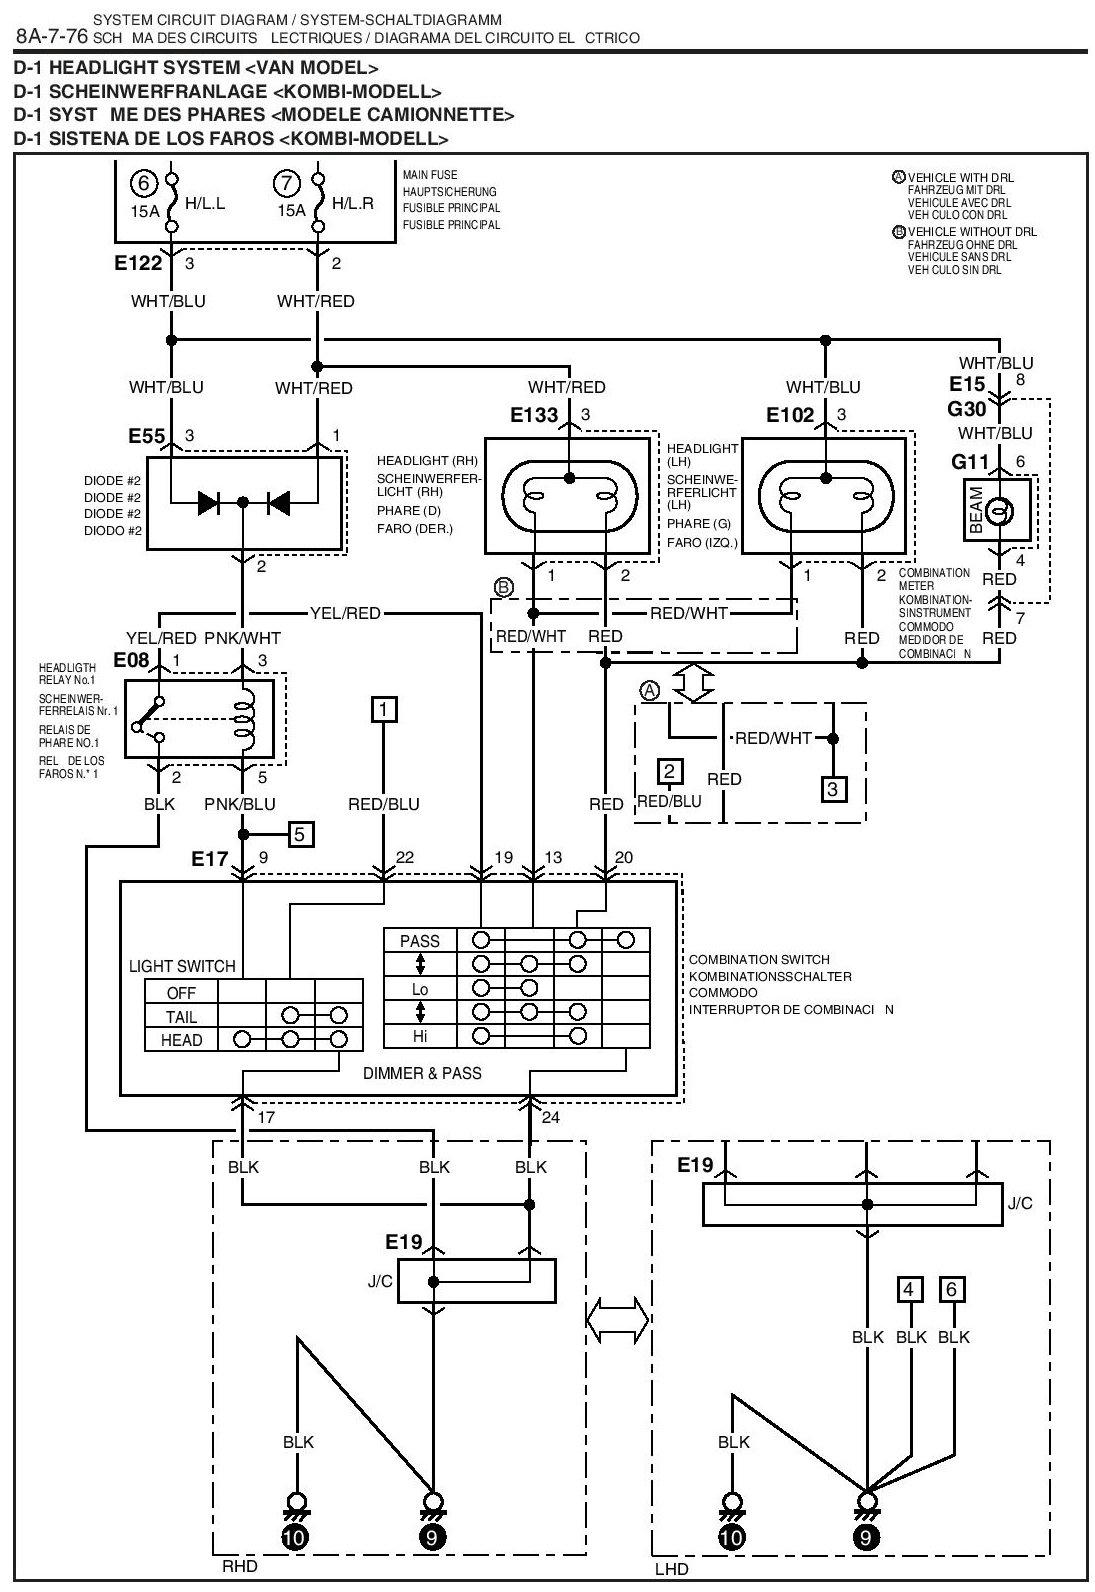 8qotqex62c6bikqzg?resize\=665%2C967 suzuki jimny towbar wiring diagram chopper wiring diagram \u2022 45 63  at alyssarenee.co